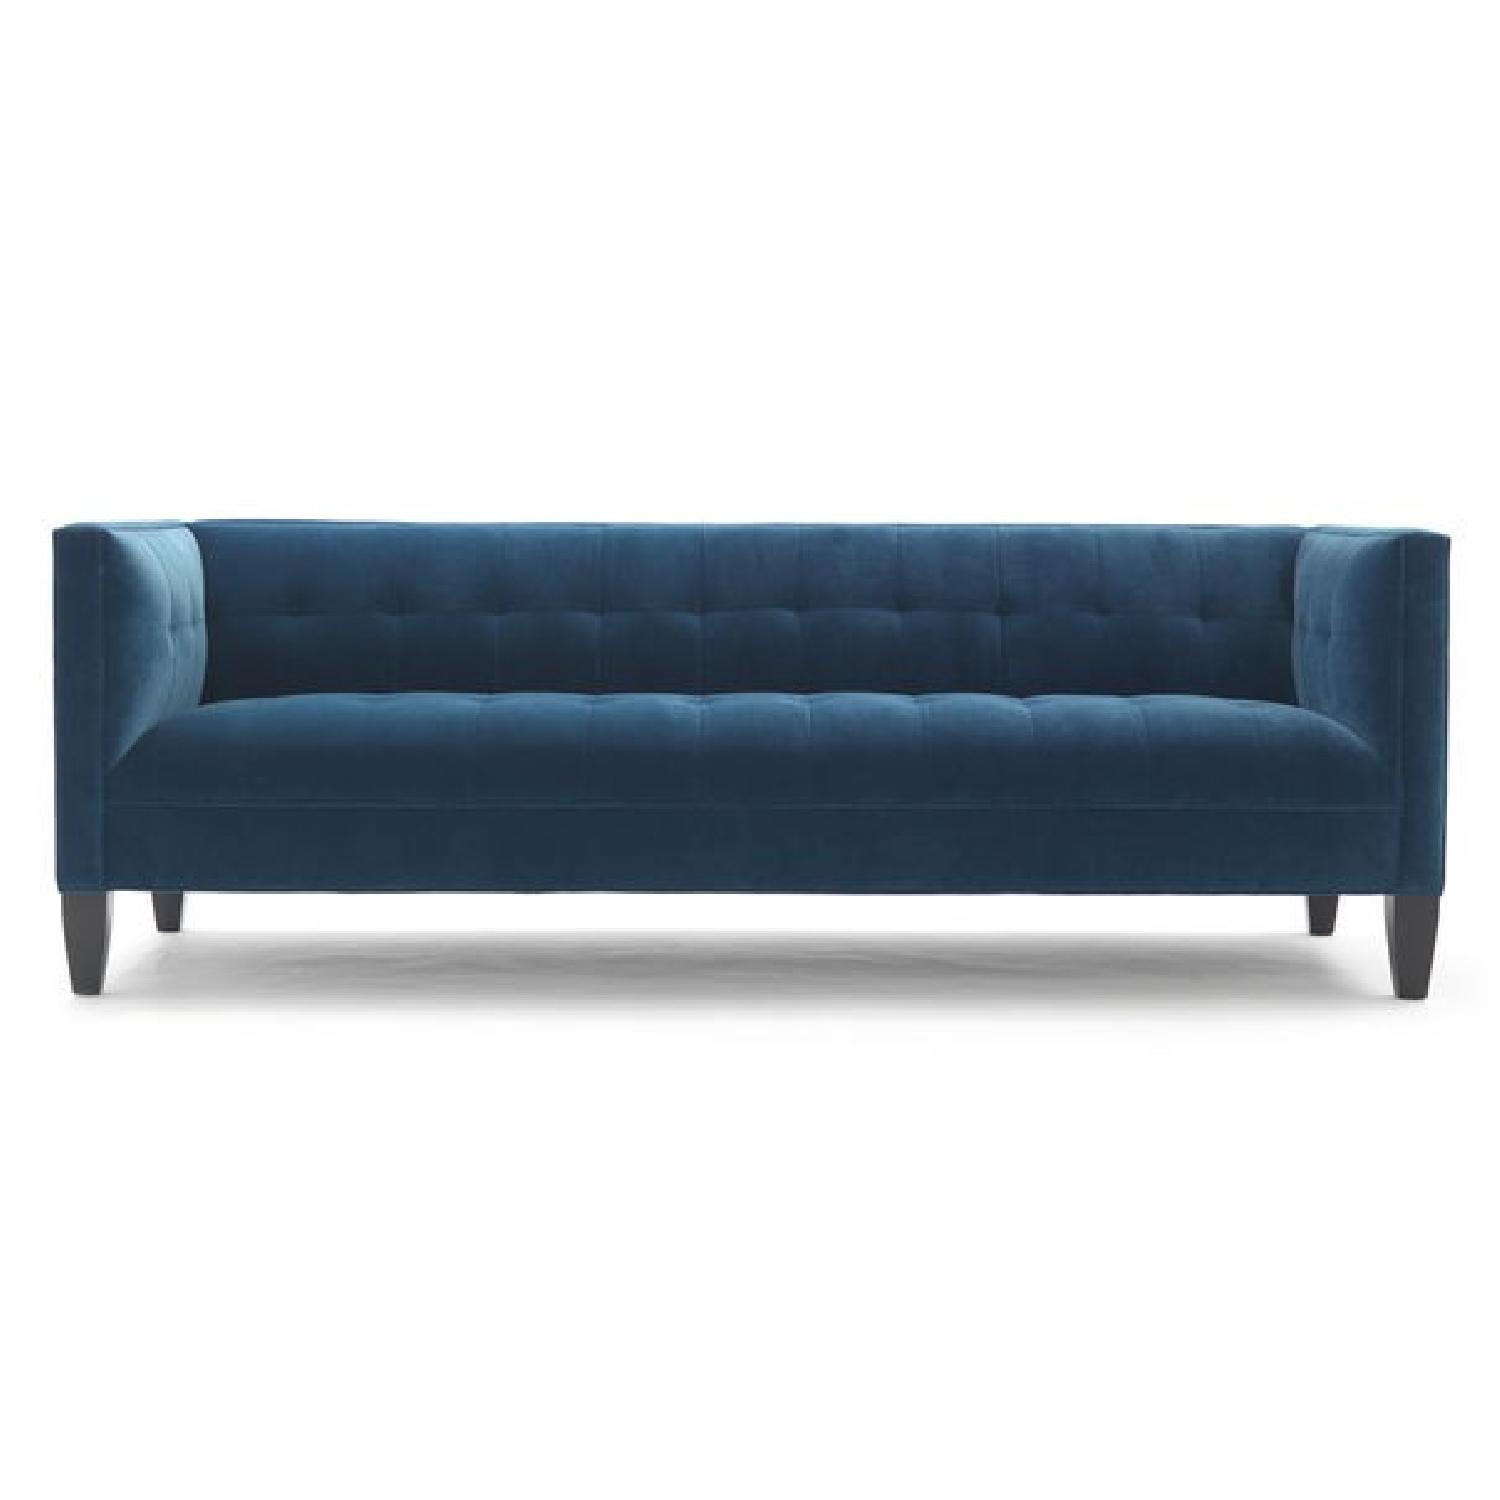 Mitchell Gold + Bob Williams Kennedy Sofa in Sky Blue-1